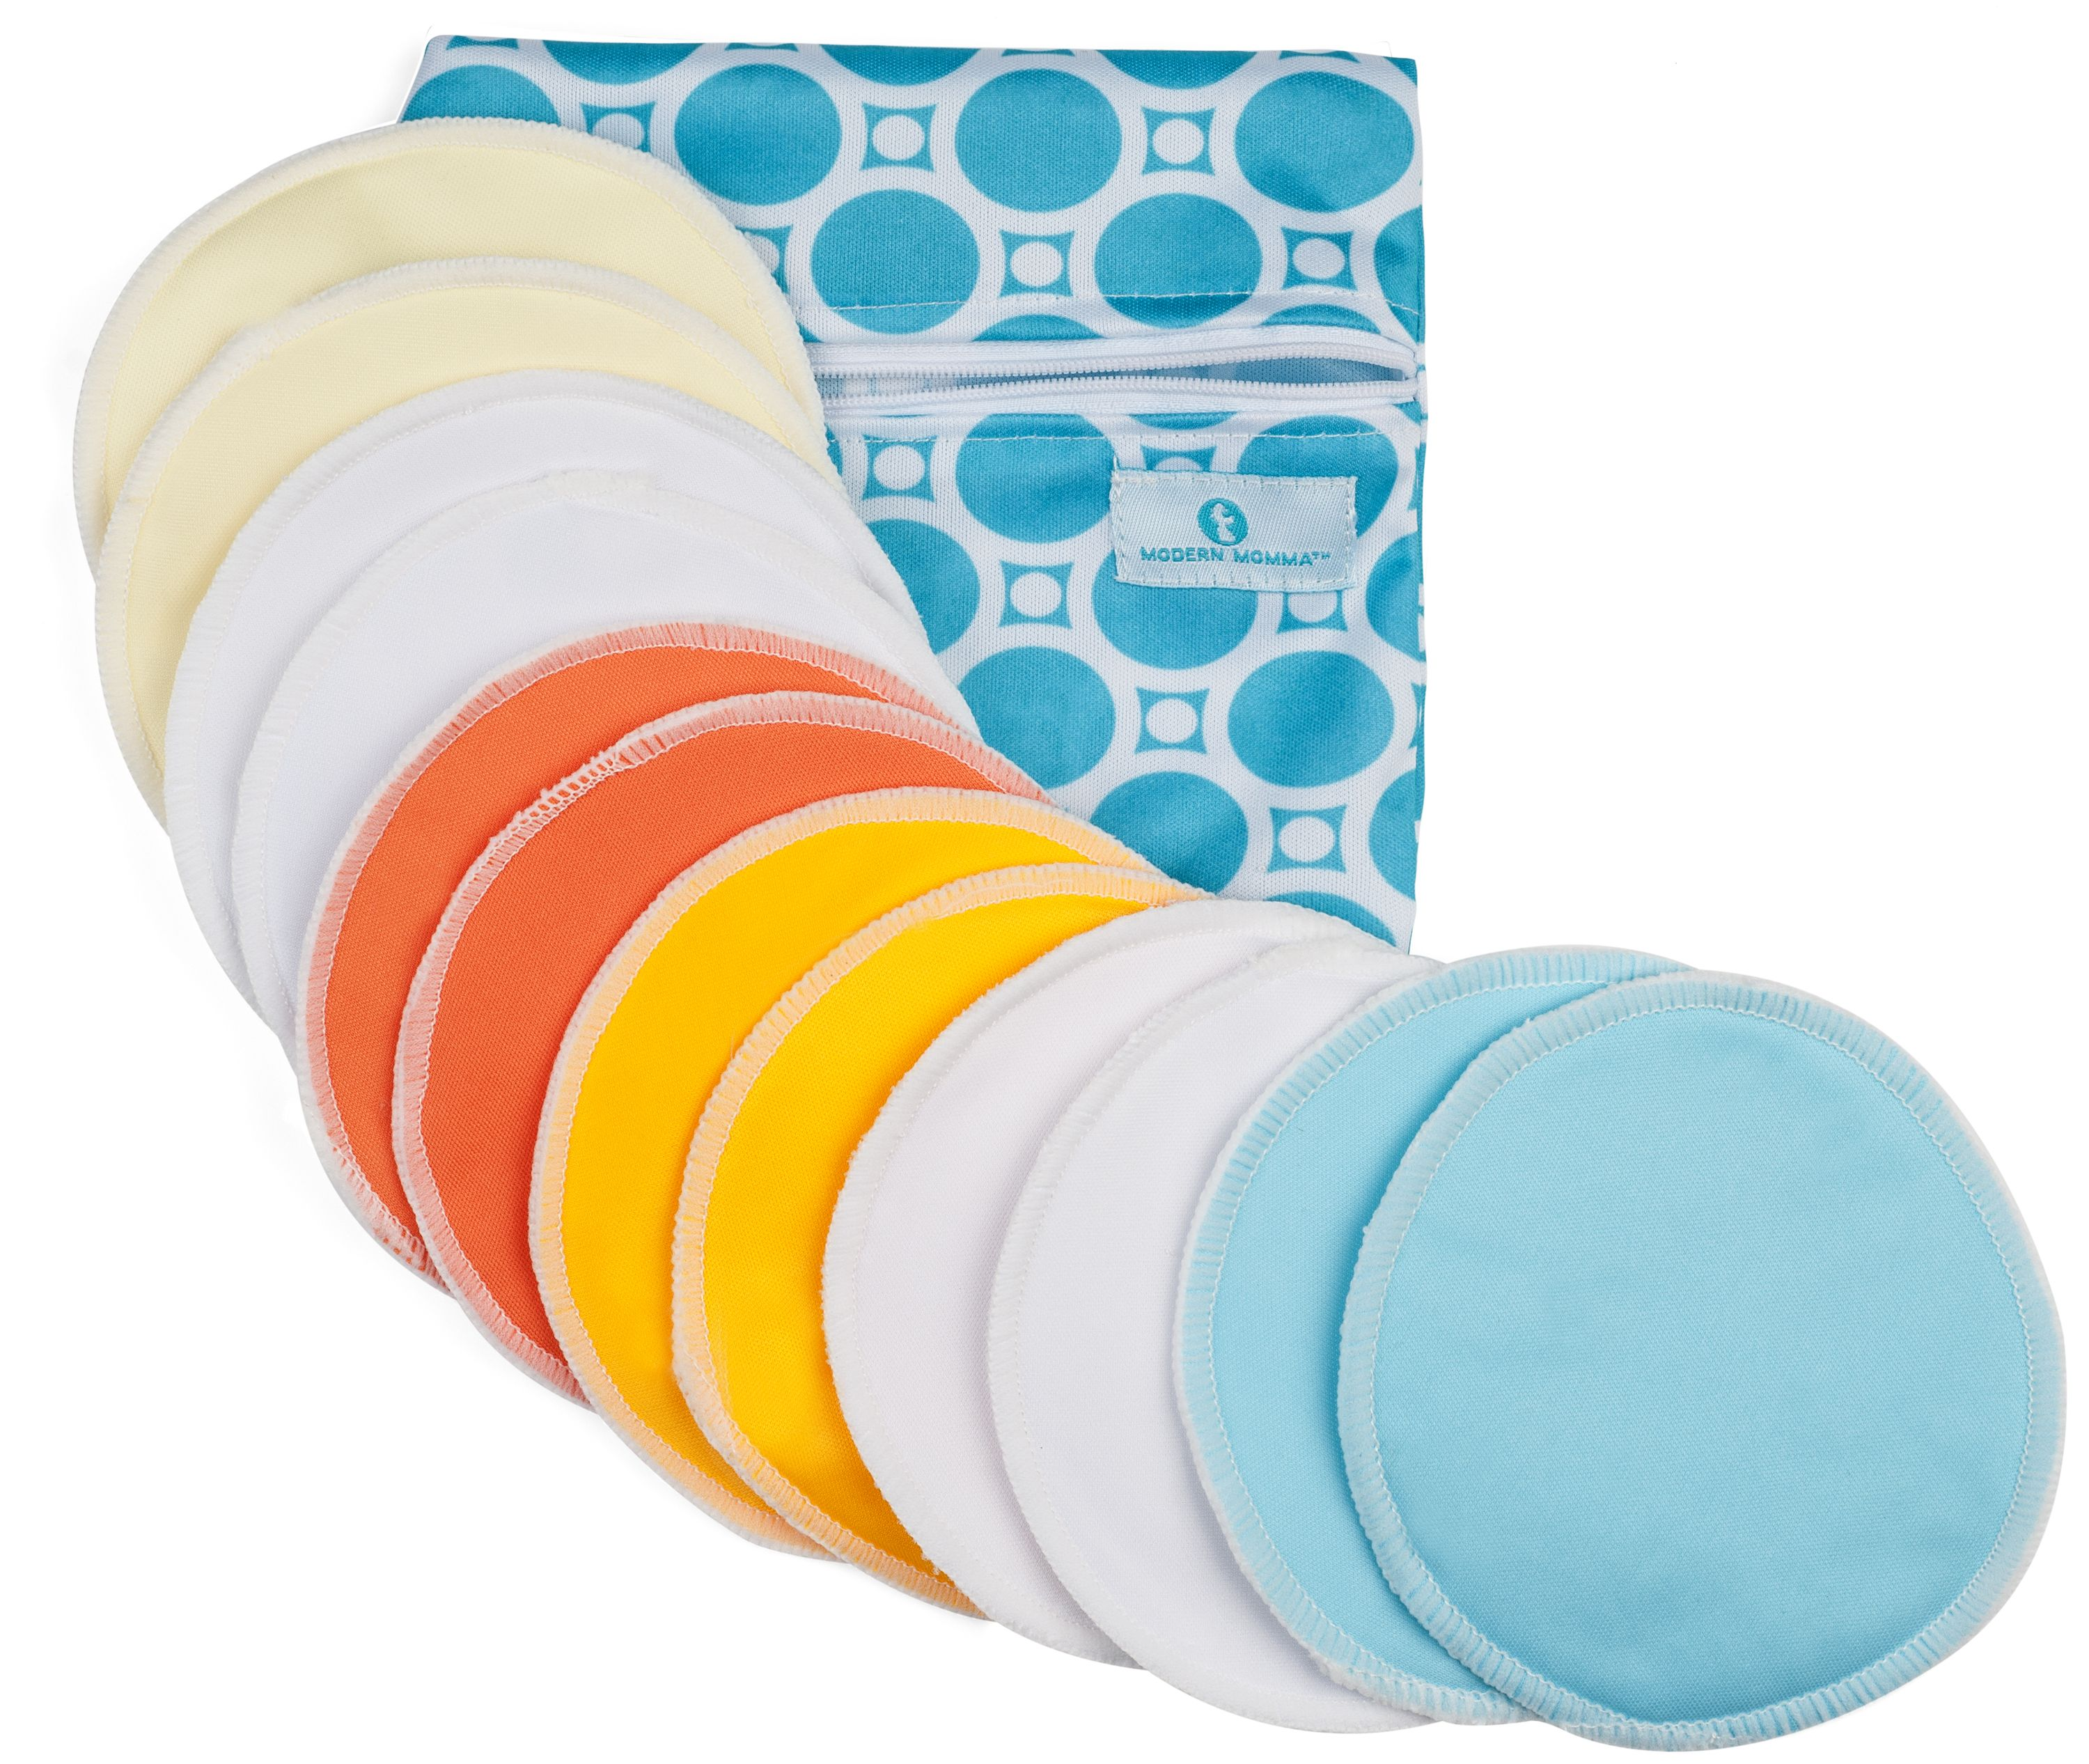 12 Pack Nursing Pads- Washable Organic Bamboo, by Modern Momma by Modern Momma